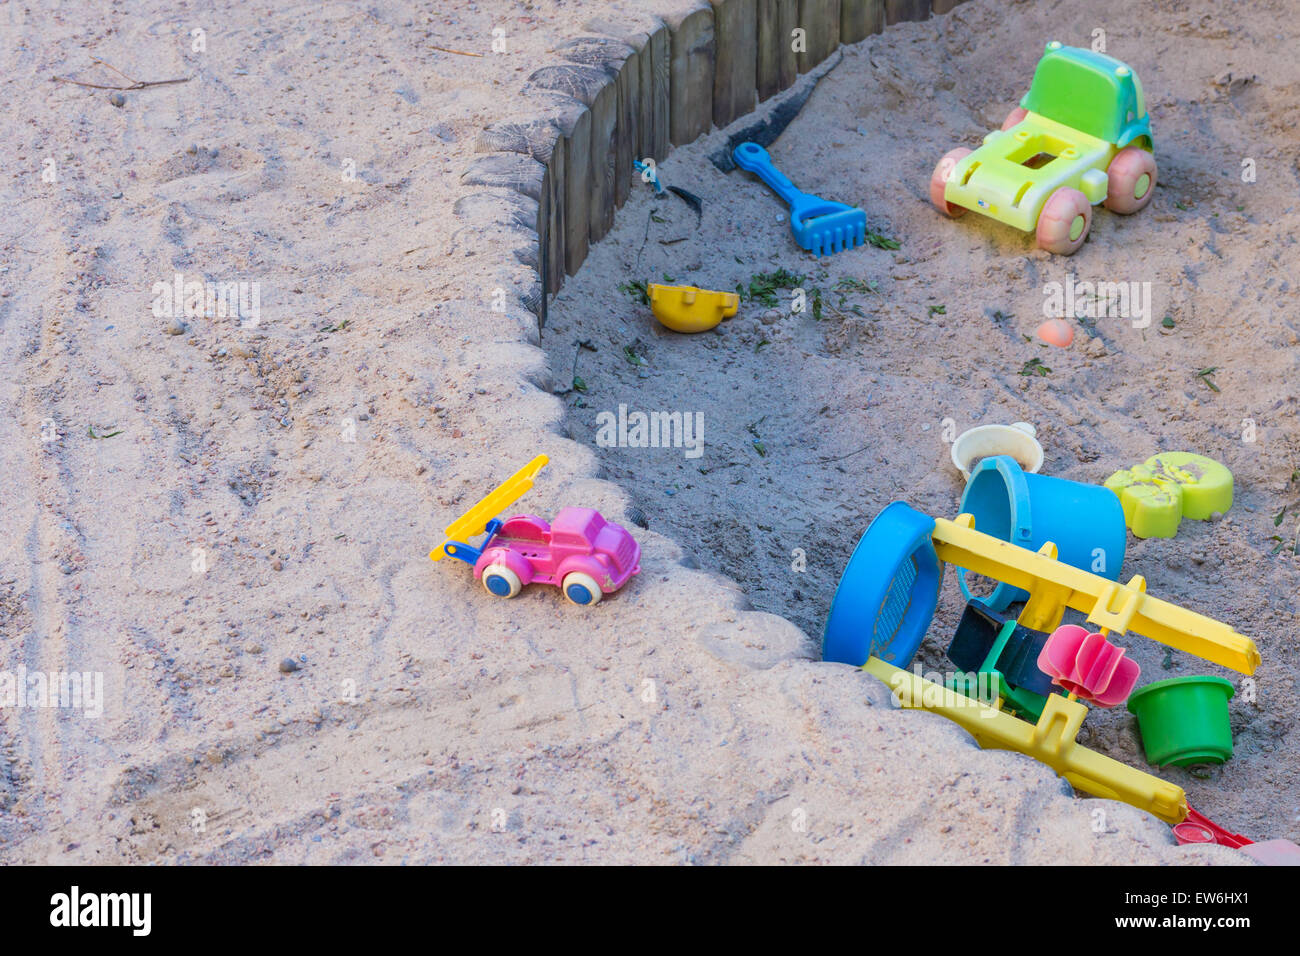 Toys in a Sandbox - Stock Image